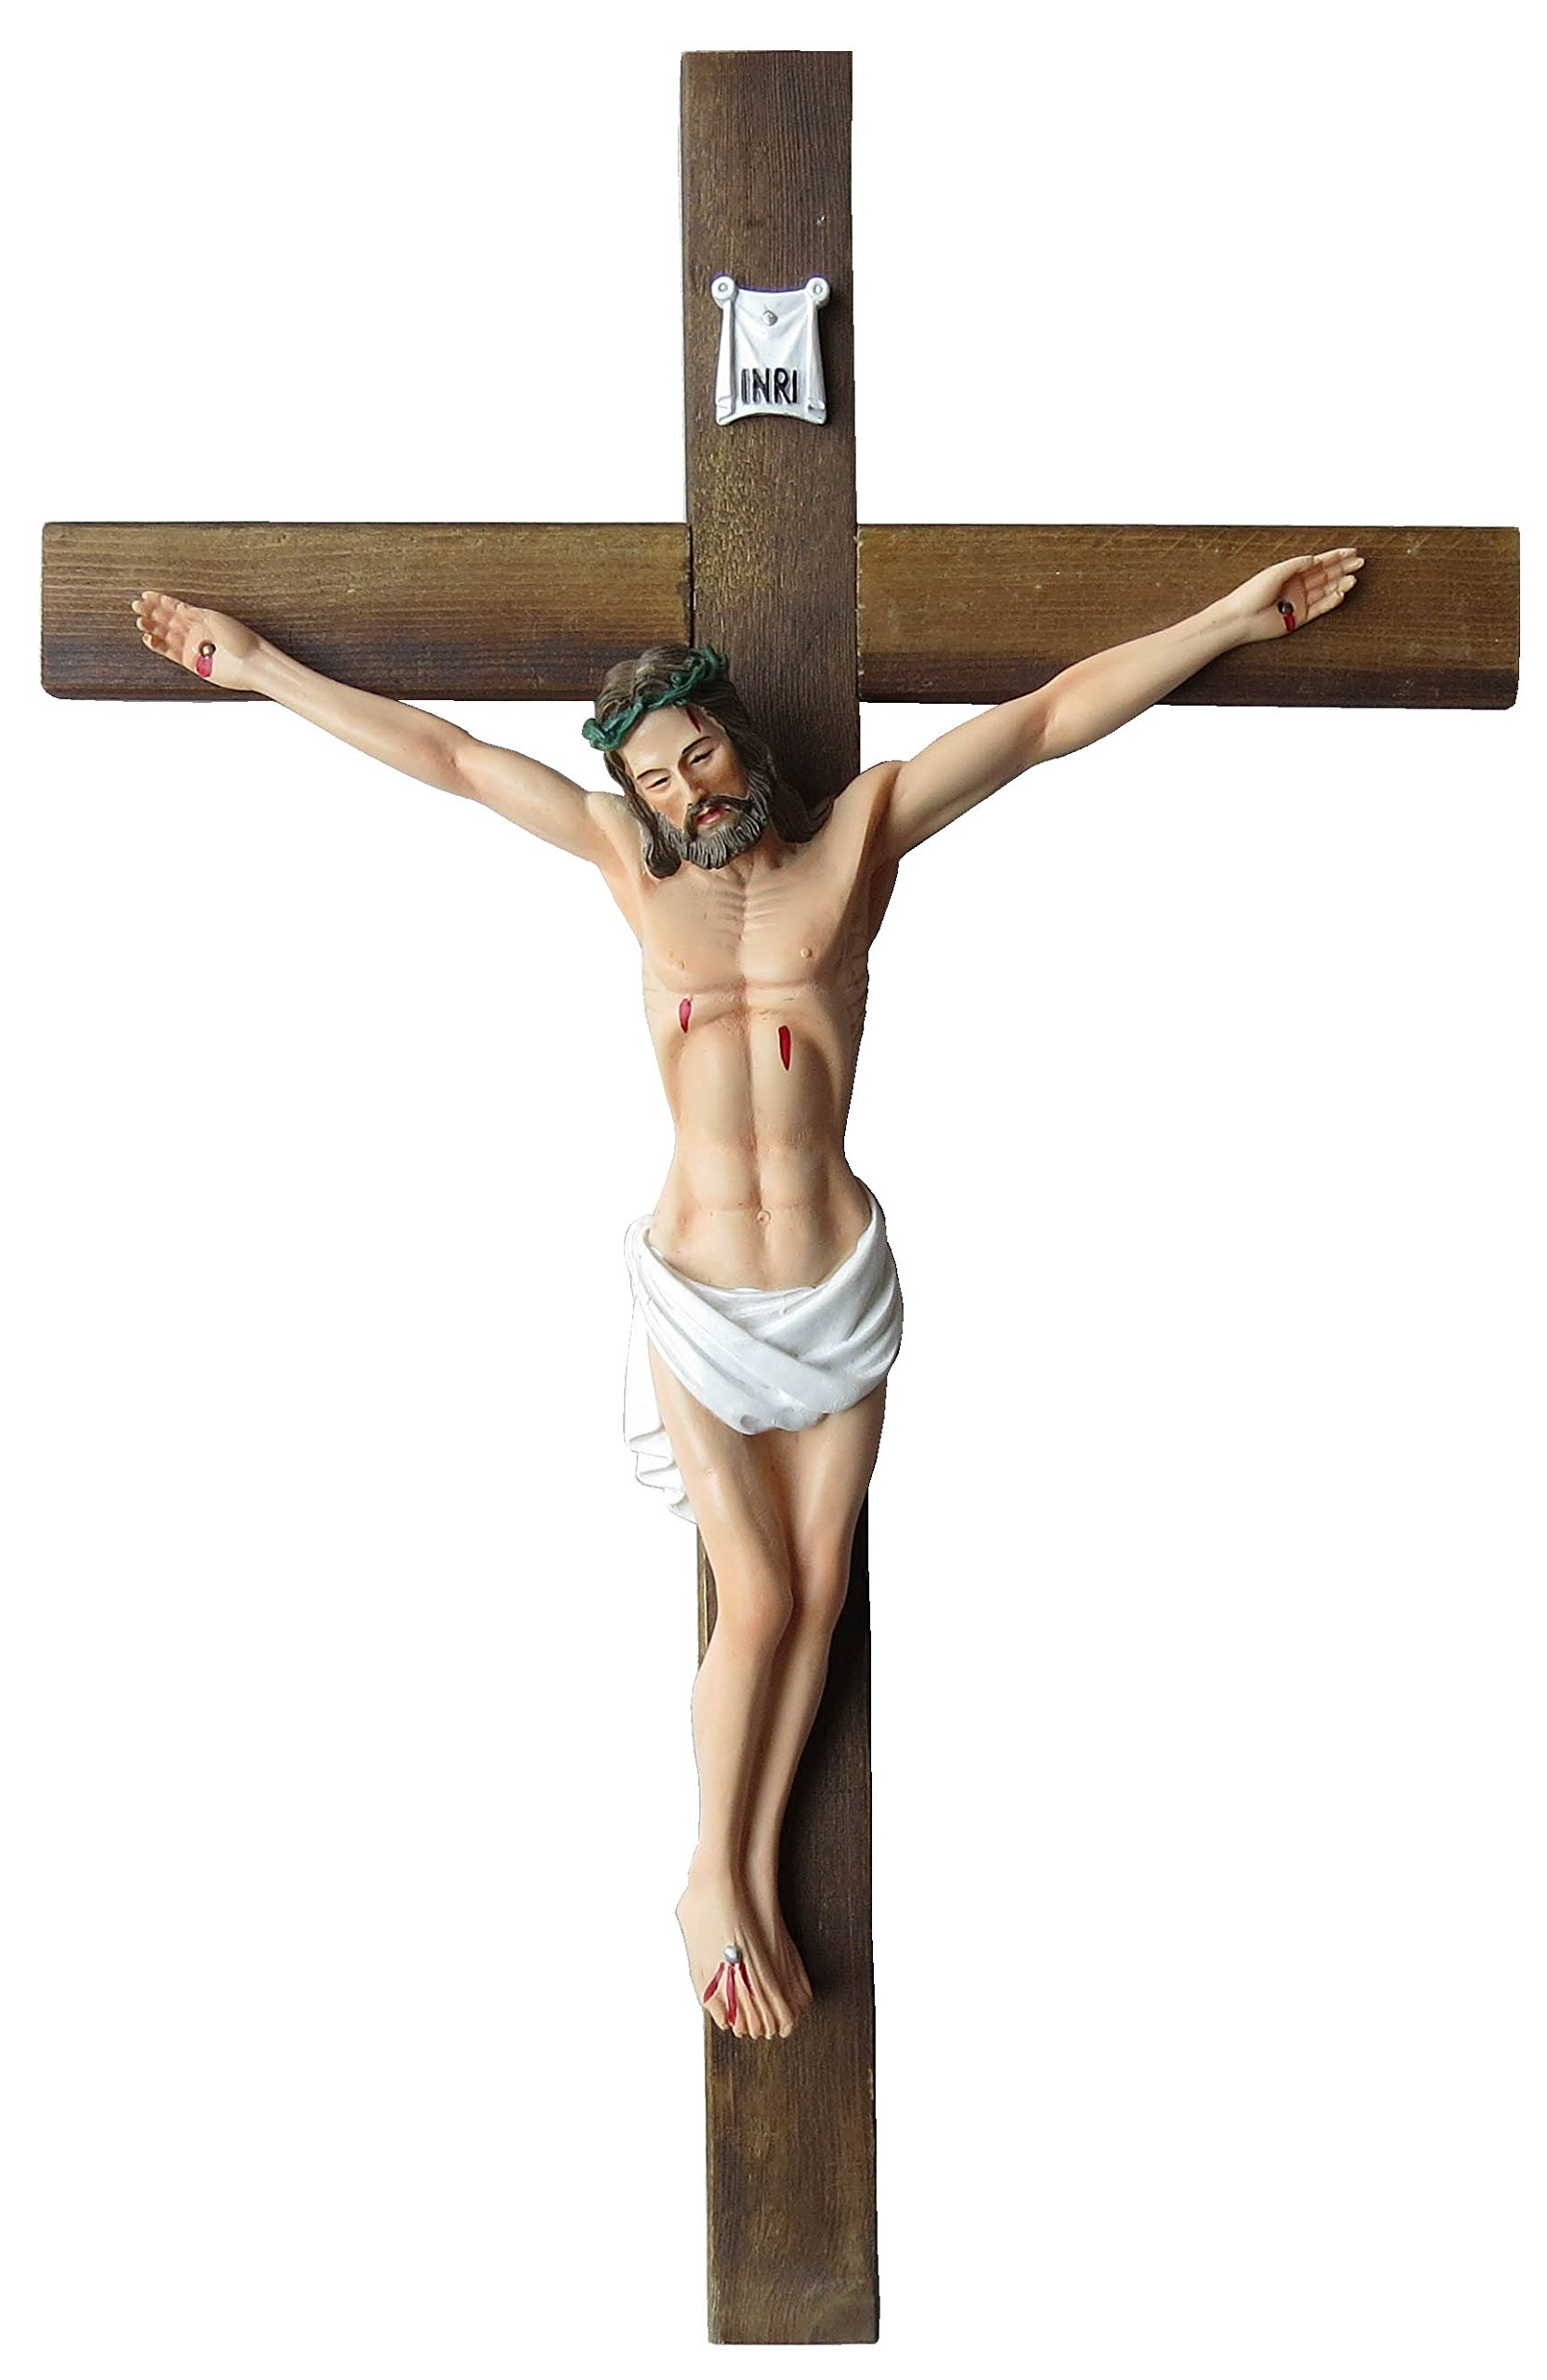 Jesus Christ on Wall Cross 10'' Crucifix Solid Wood Cross High Resin Statue Figure Collectible Sculpture Catholic Home Chapel Décor (10'')